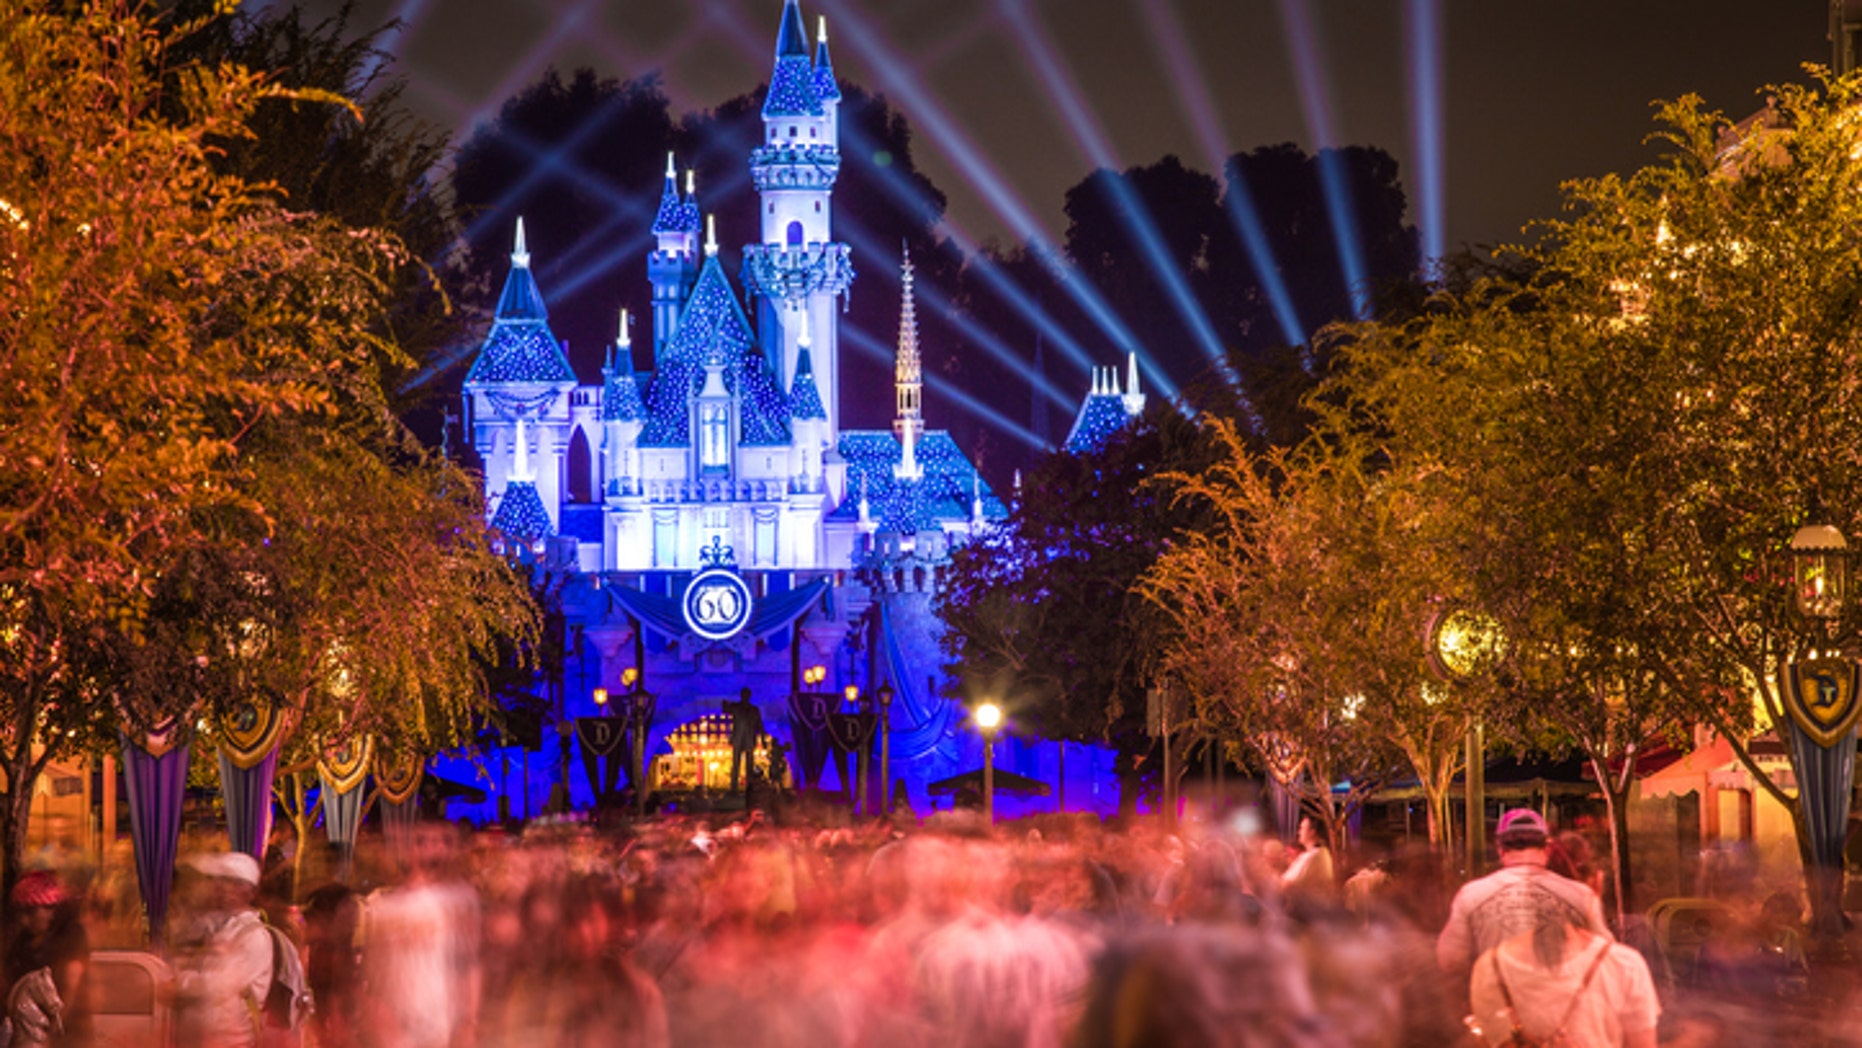 You can travel to Disney on a budget with these tips.